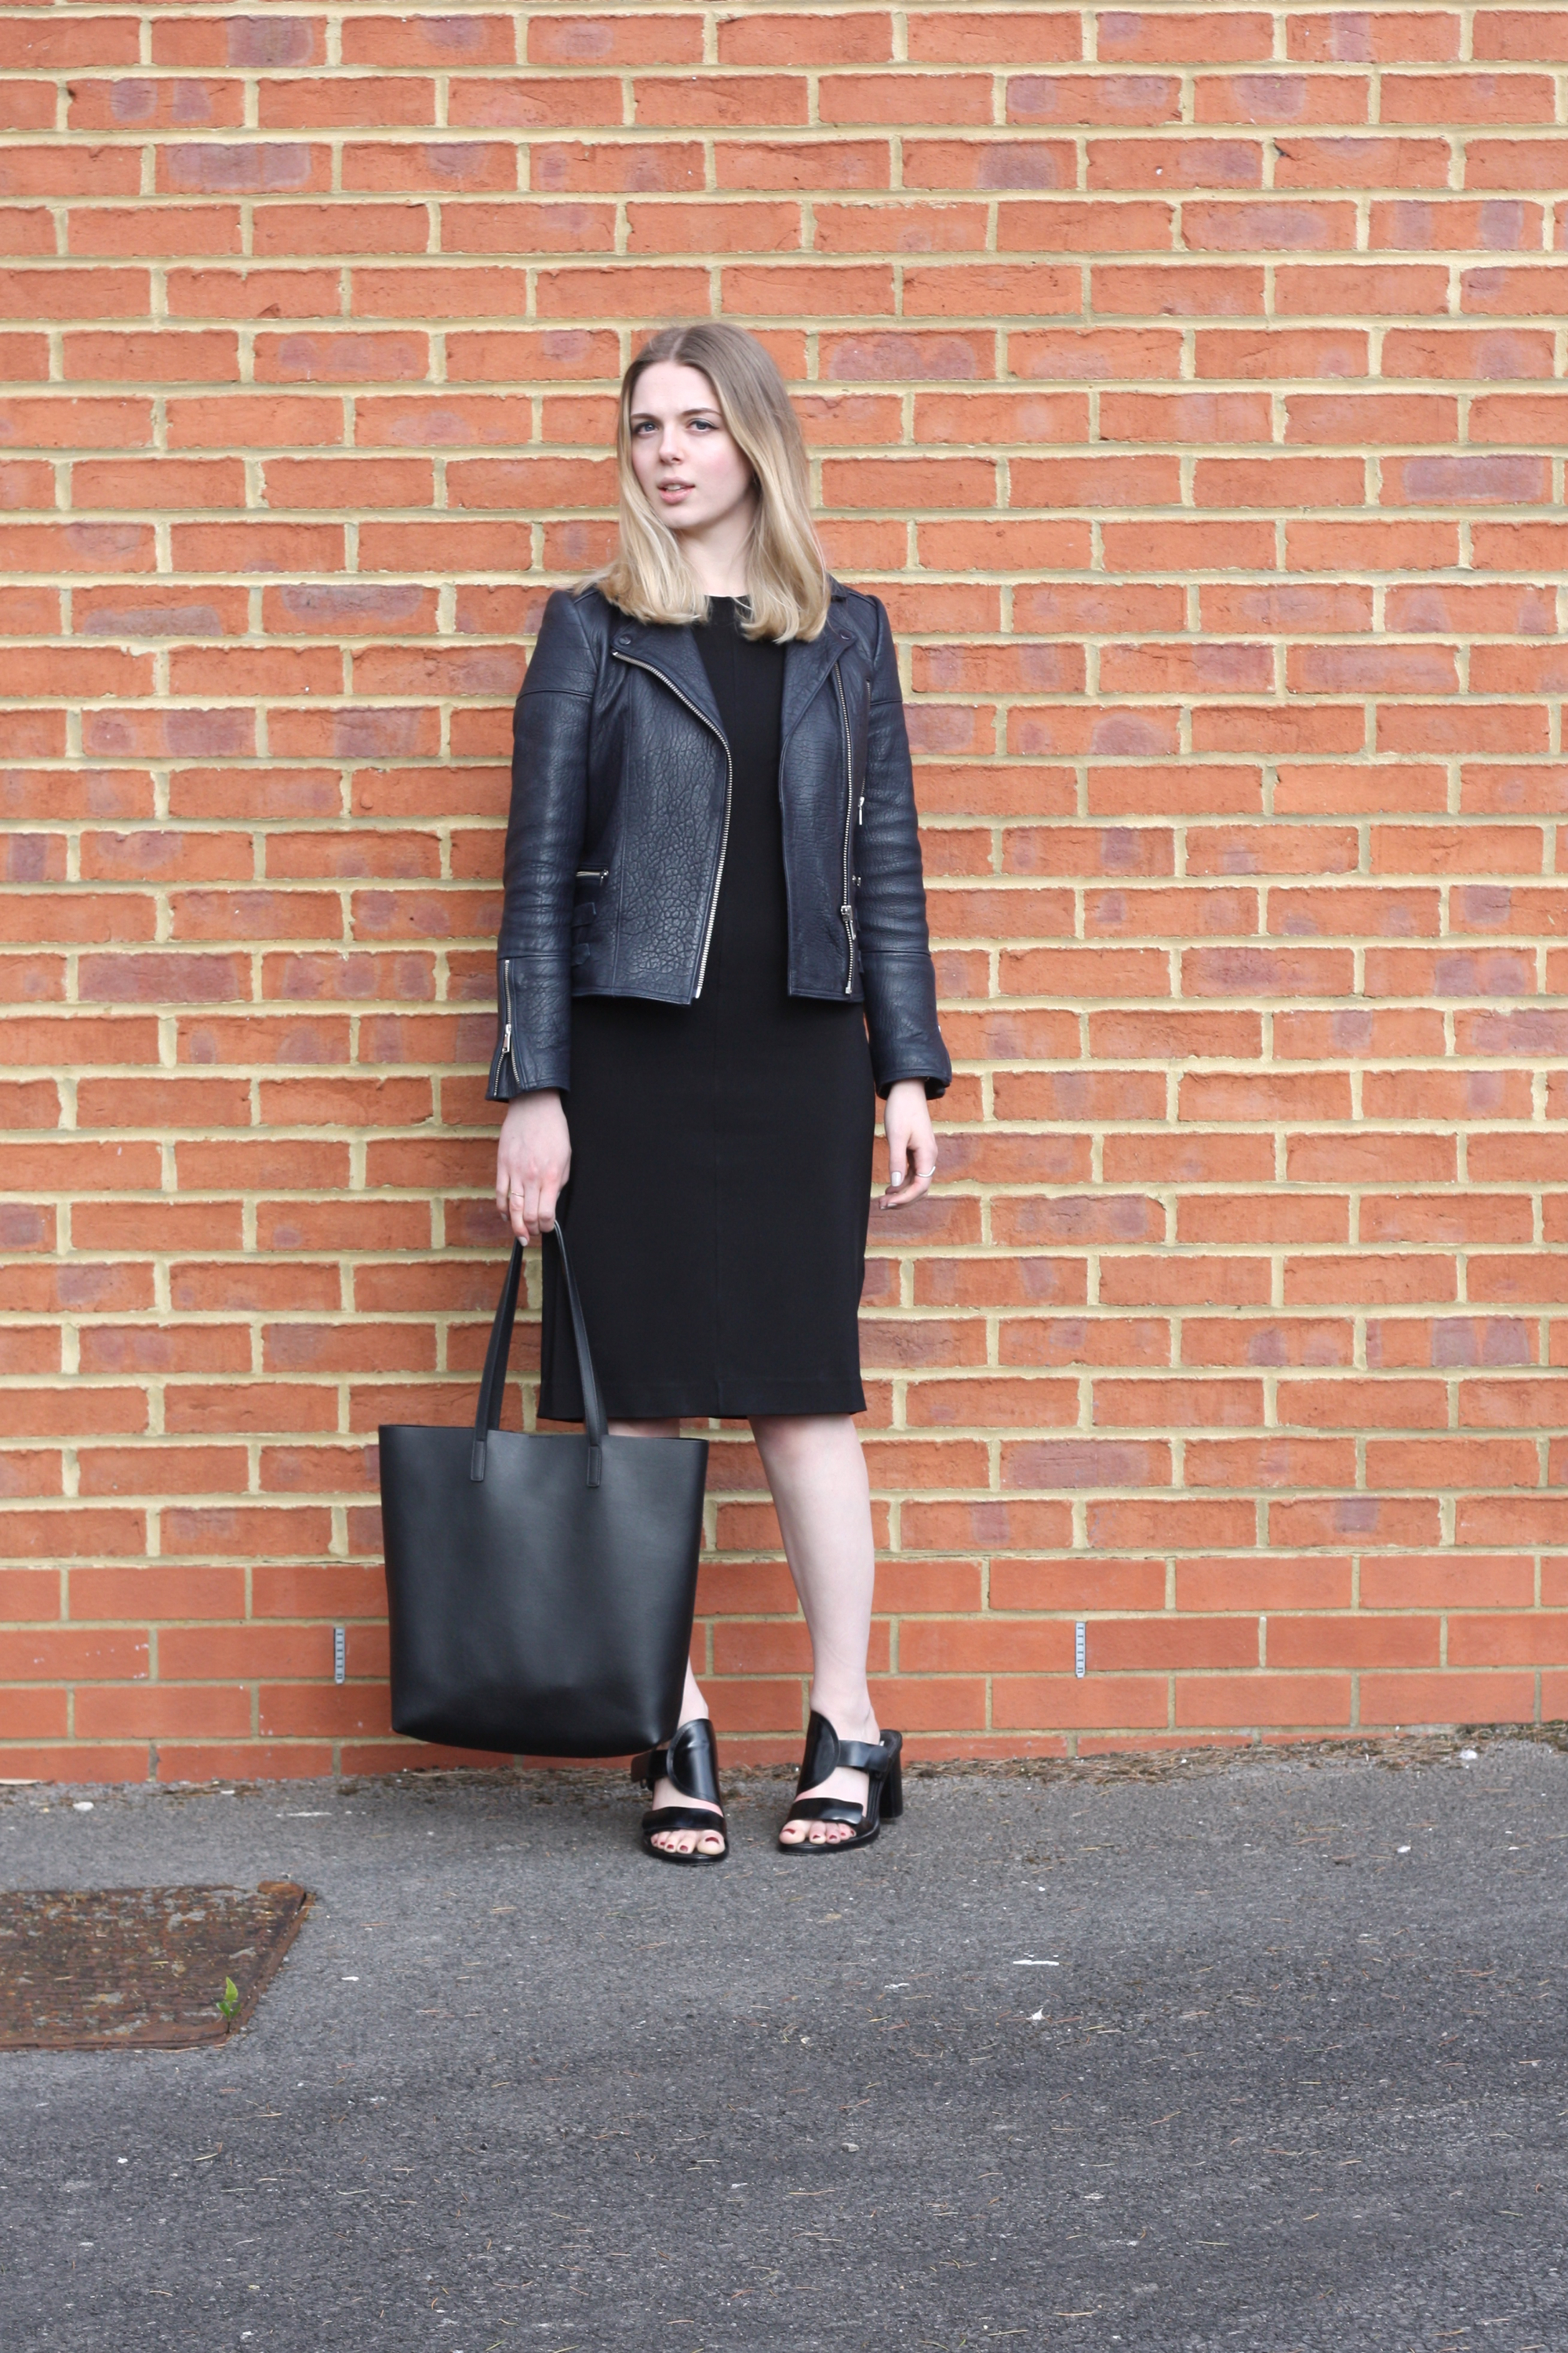 & Other Stories black dress, Saint Laurent black shopper bag and Whistles navy leather jacket